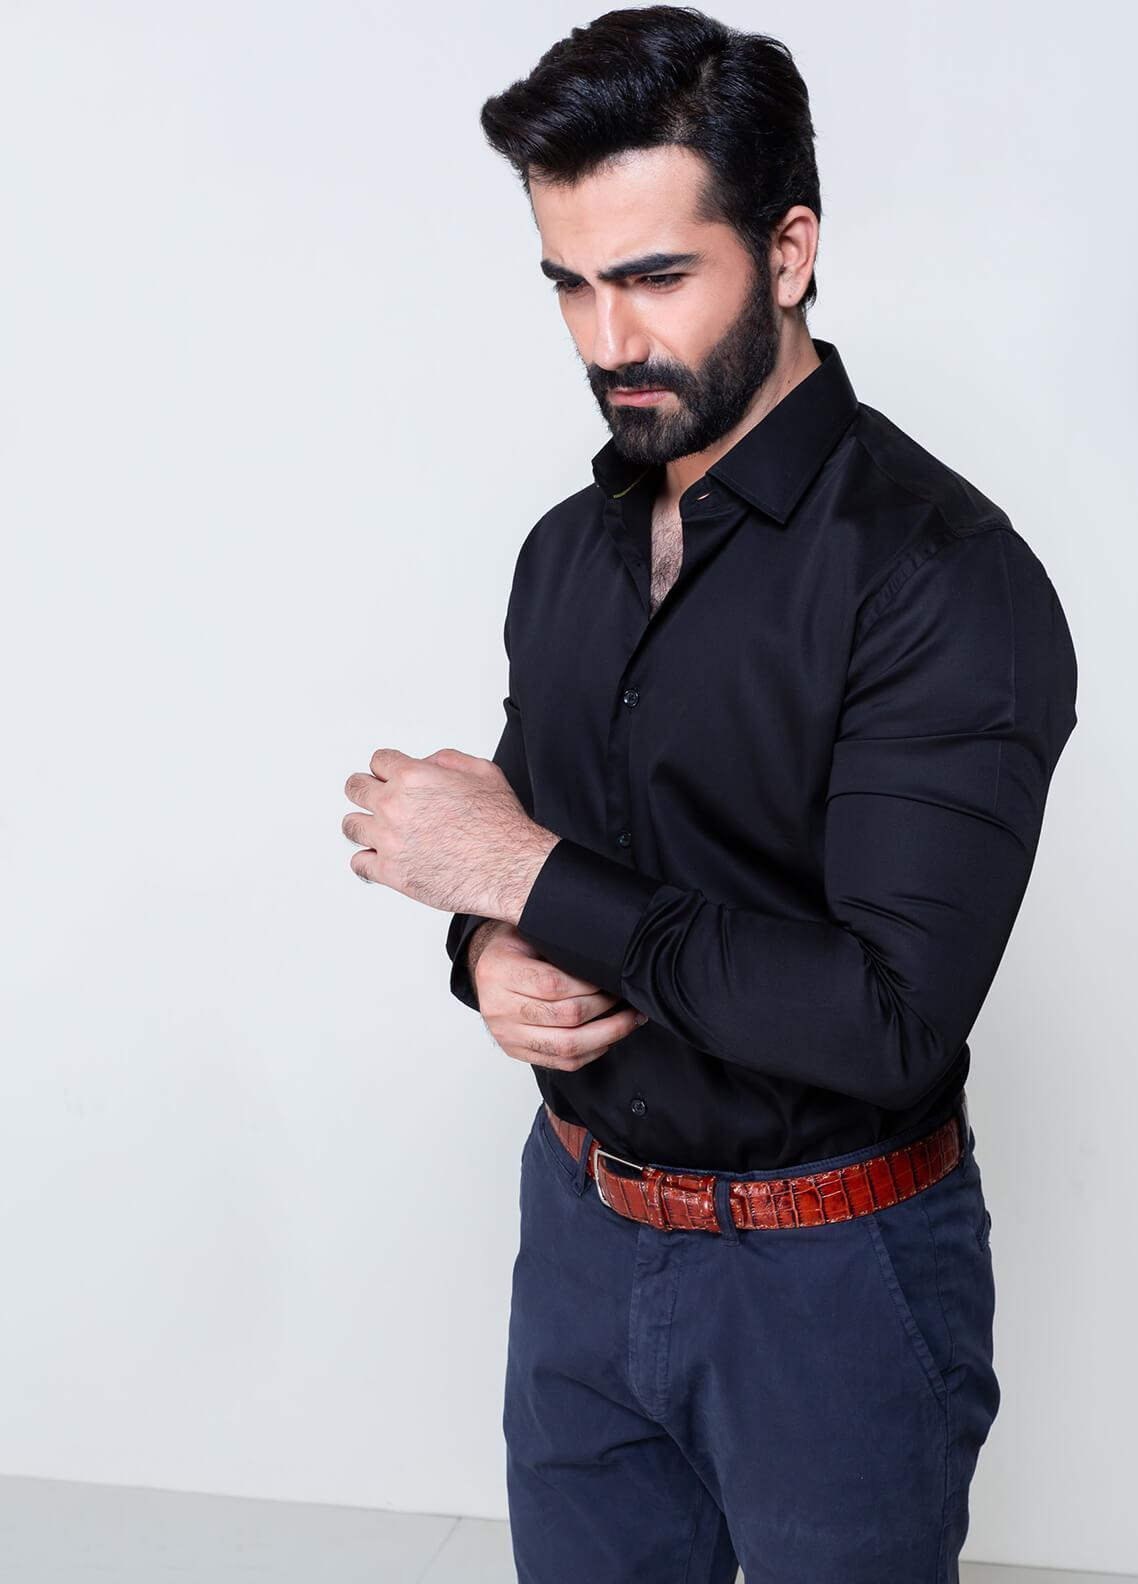 Brumano Cotton Formal Shirts for Men - Black BRM-854